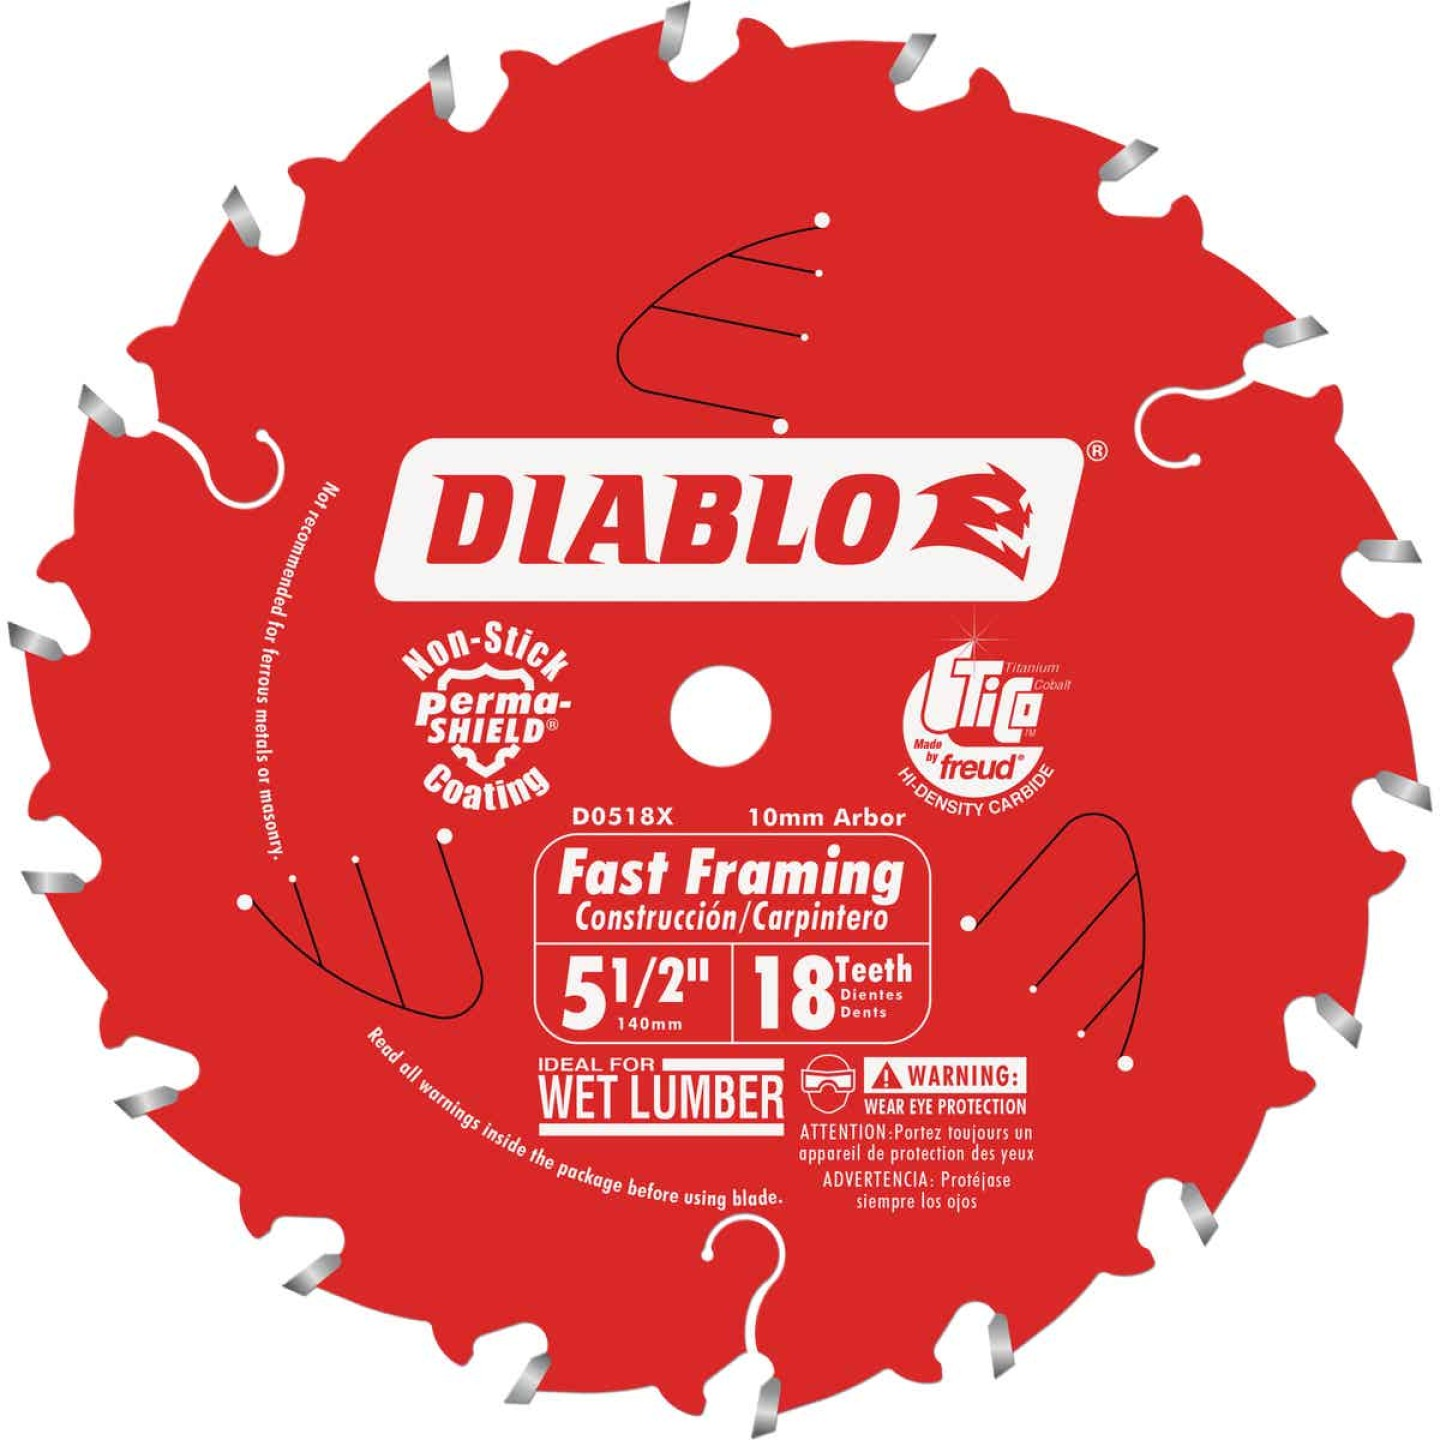 Diablo 5-1/2 In. 18-Tooth Fast Framing Circular Saw Blade with Bushings Image 1